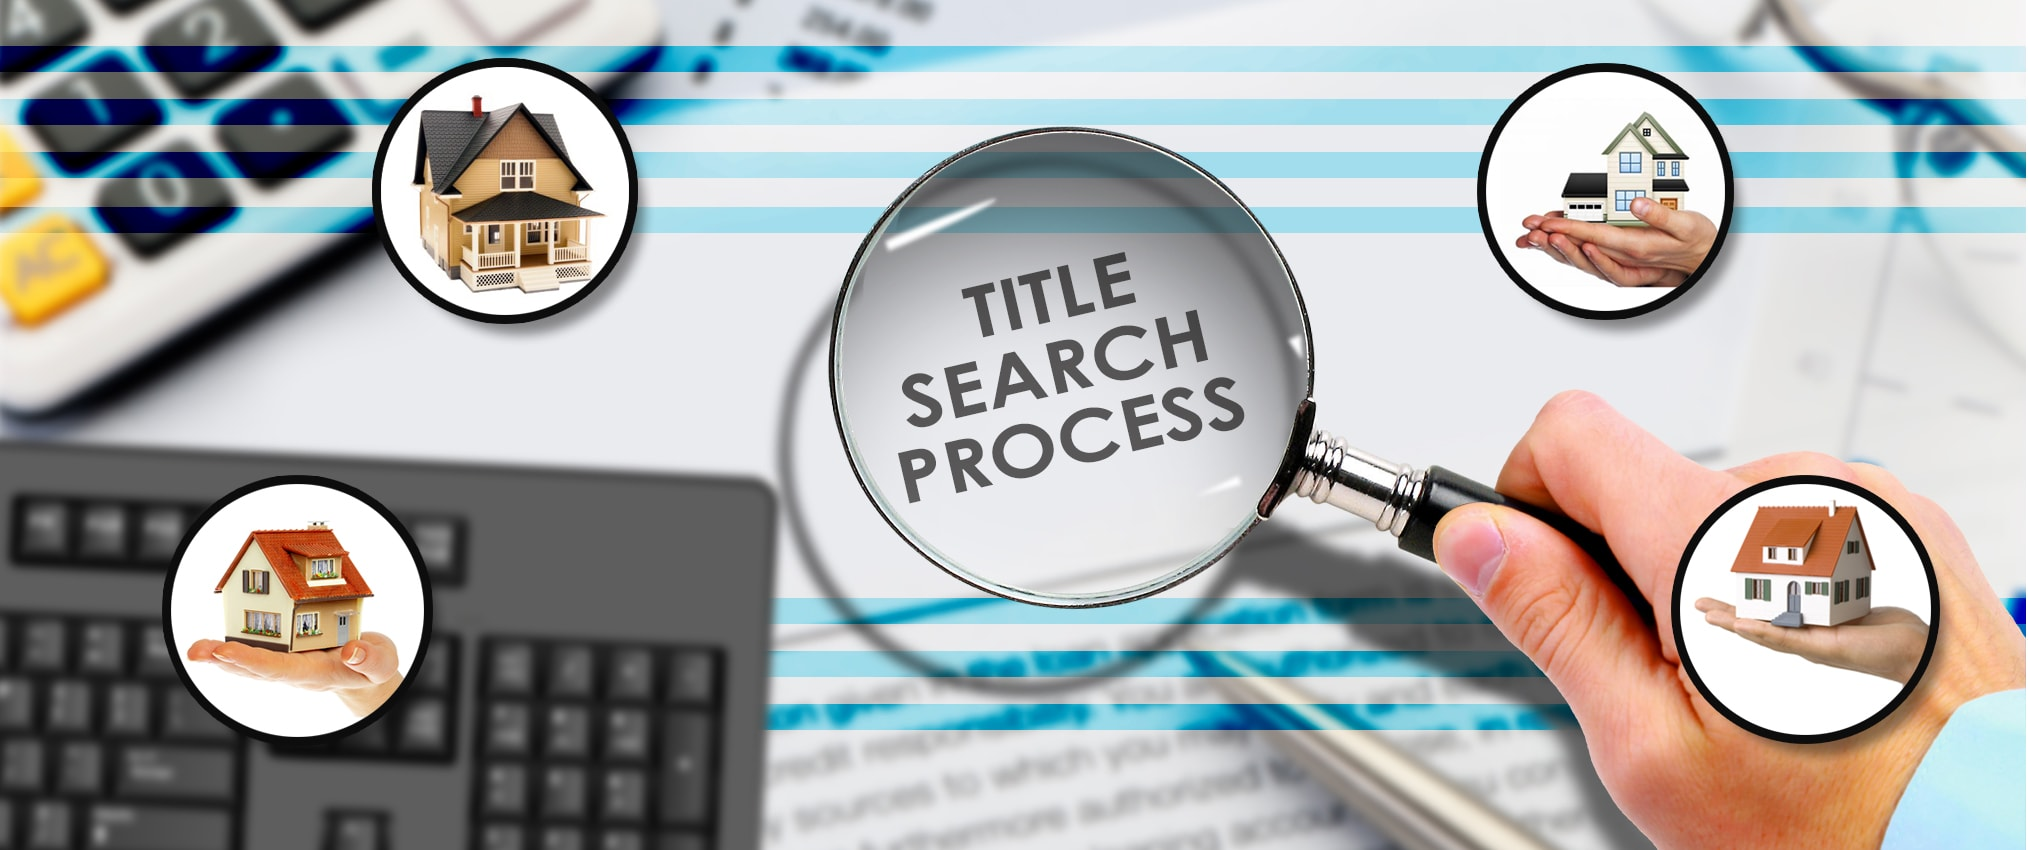 HOME SERVICES: Do I really need a property title search?